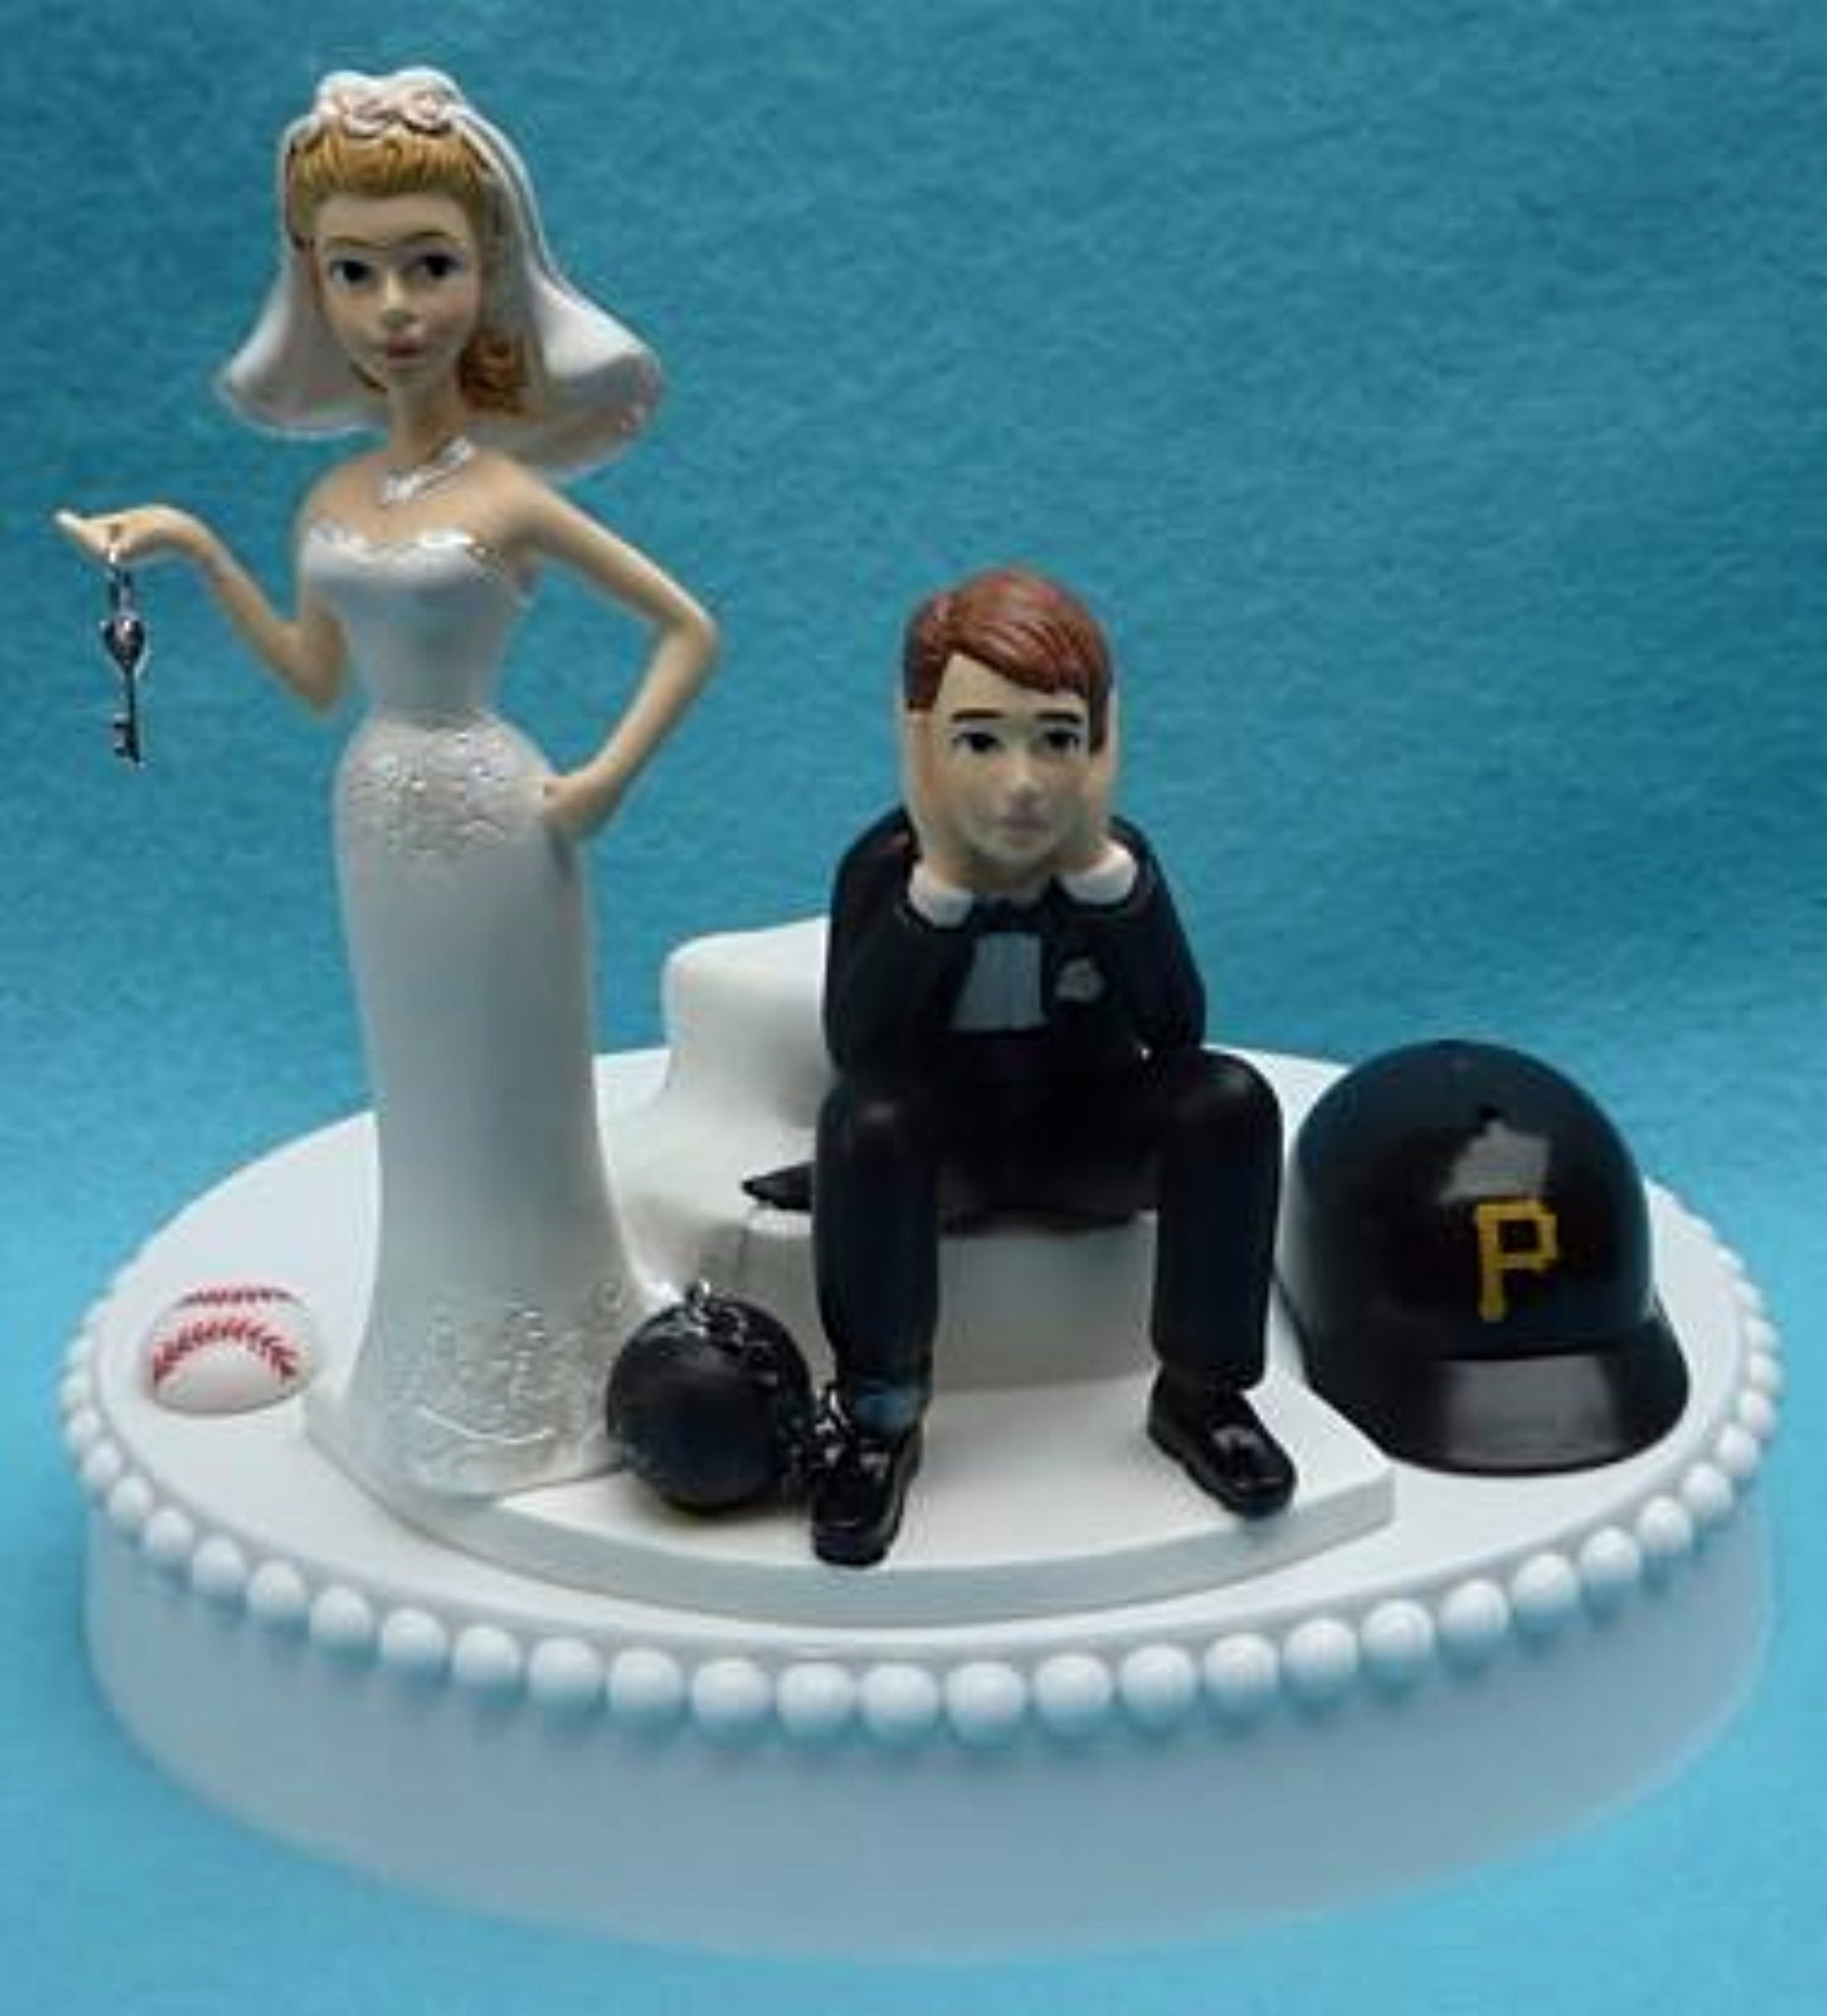 Wedding Cake Topper - Pittsburgh Pirates Baseball Themed Key